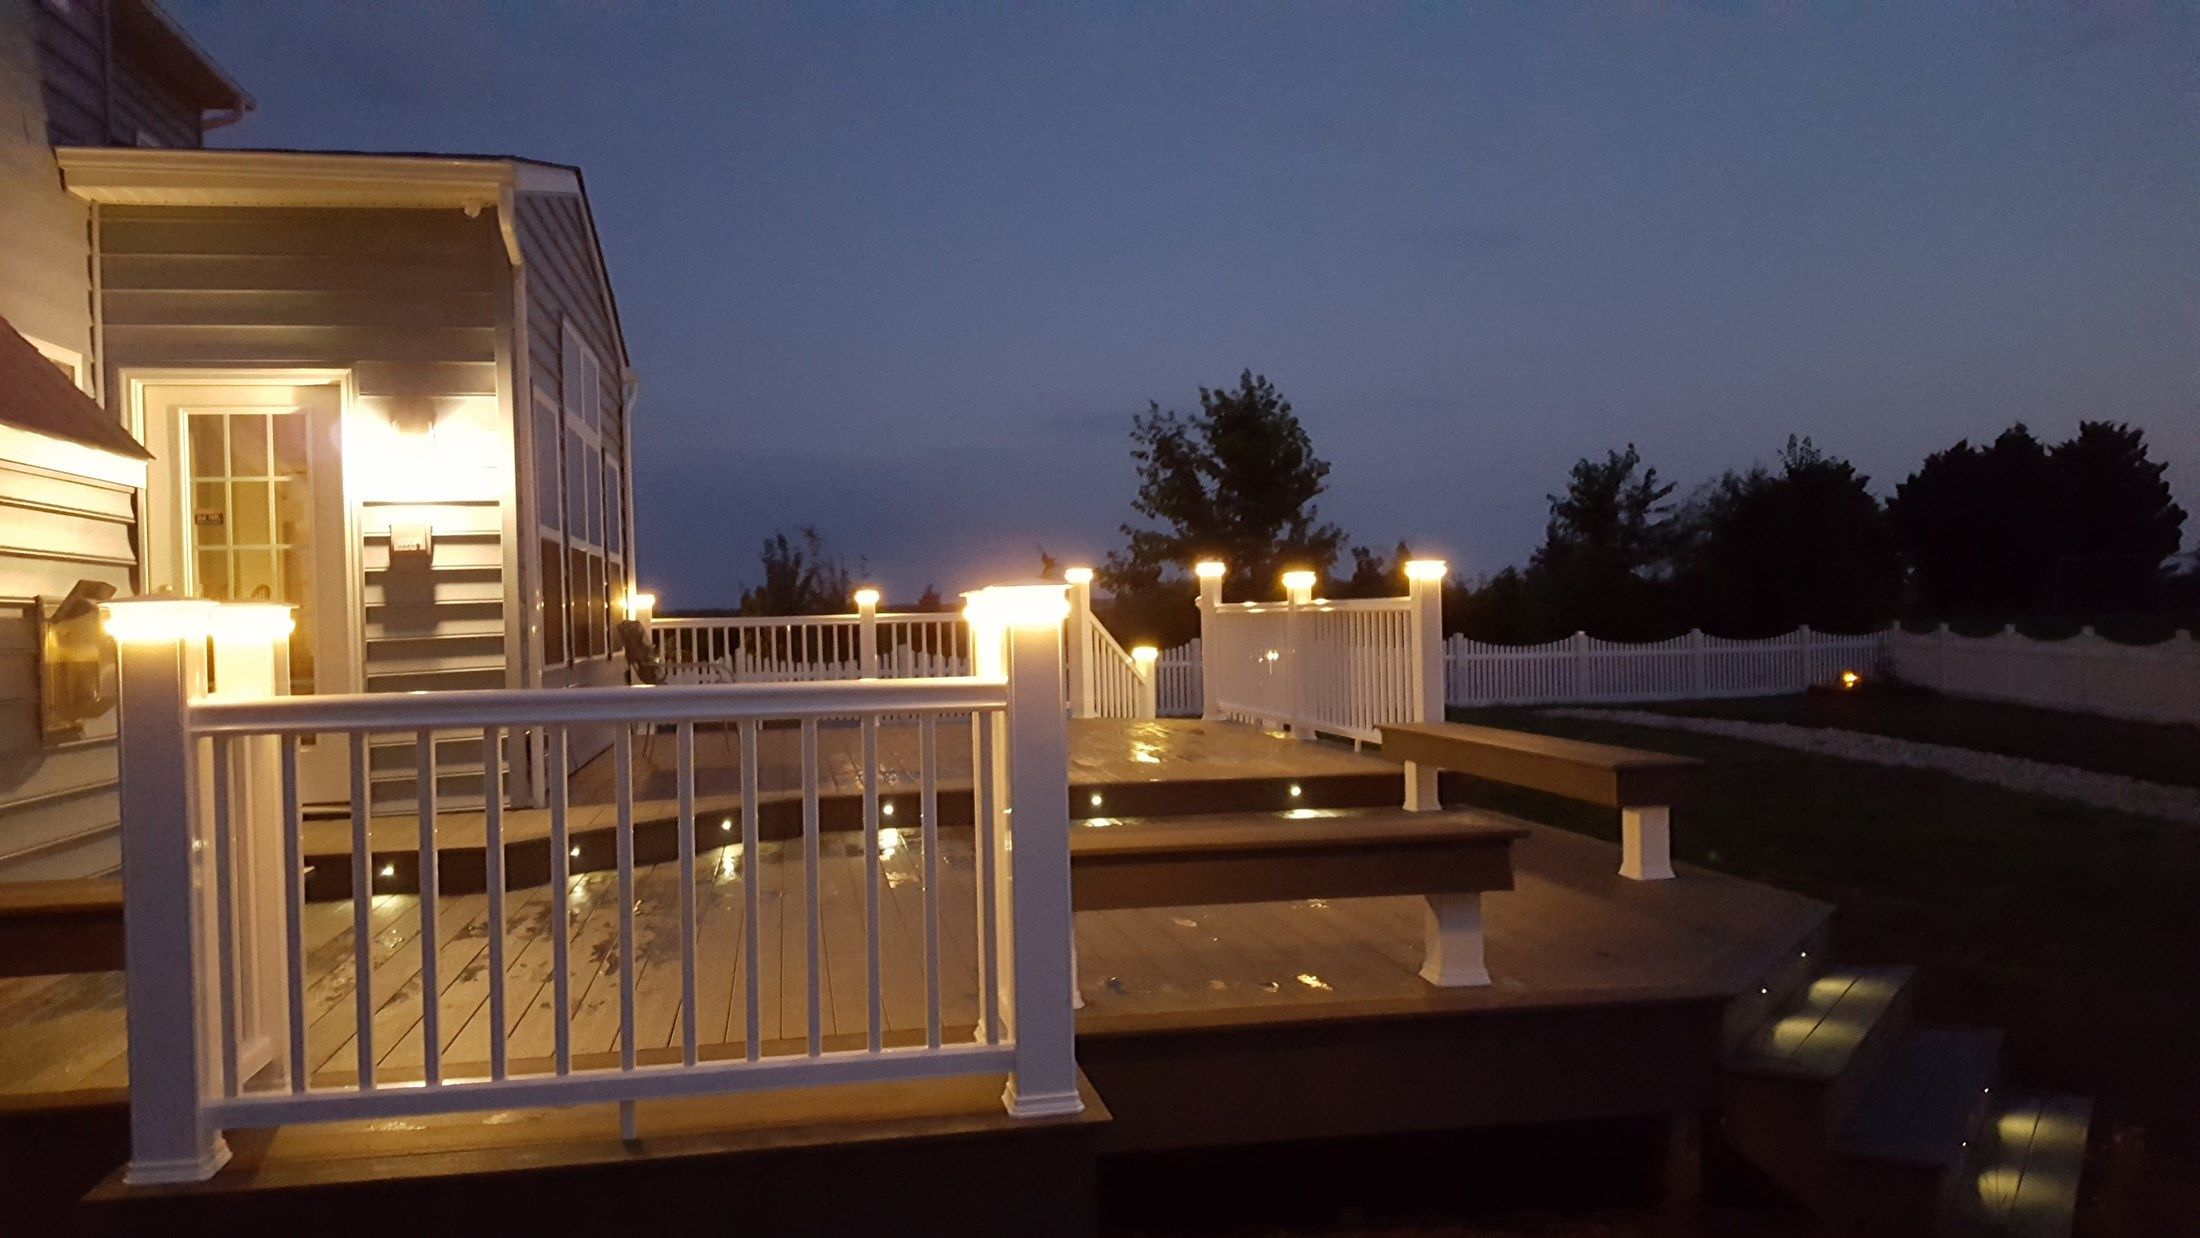 Timbertech Deck-Lighting & Benches - Picture 6508